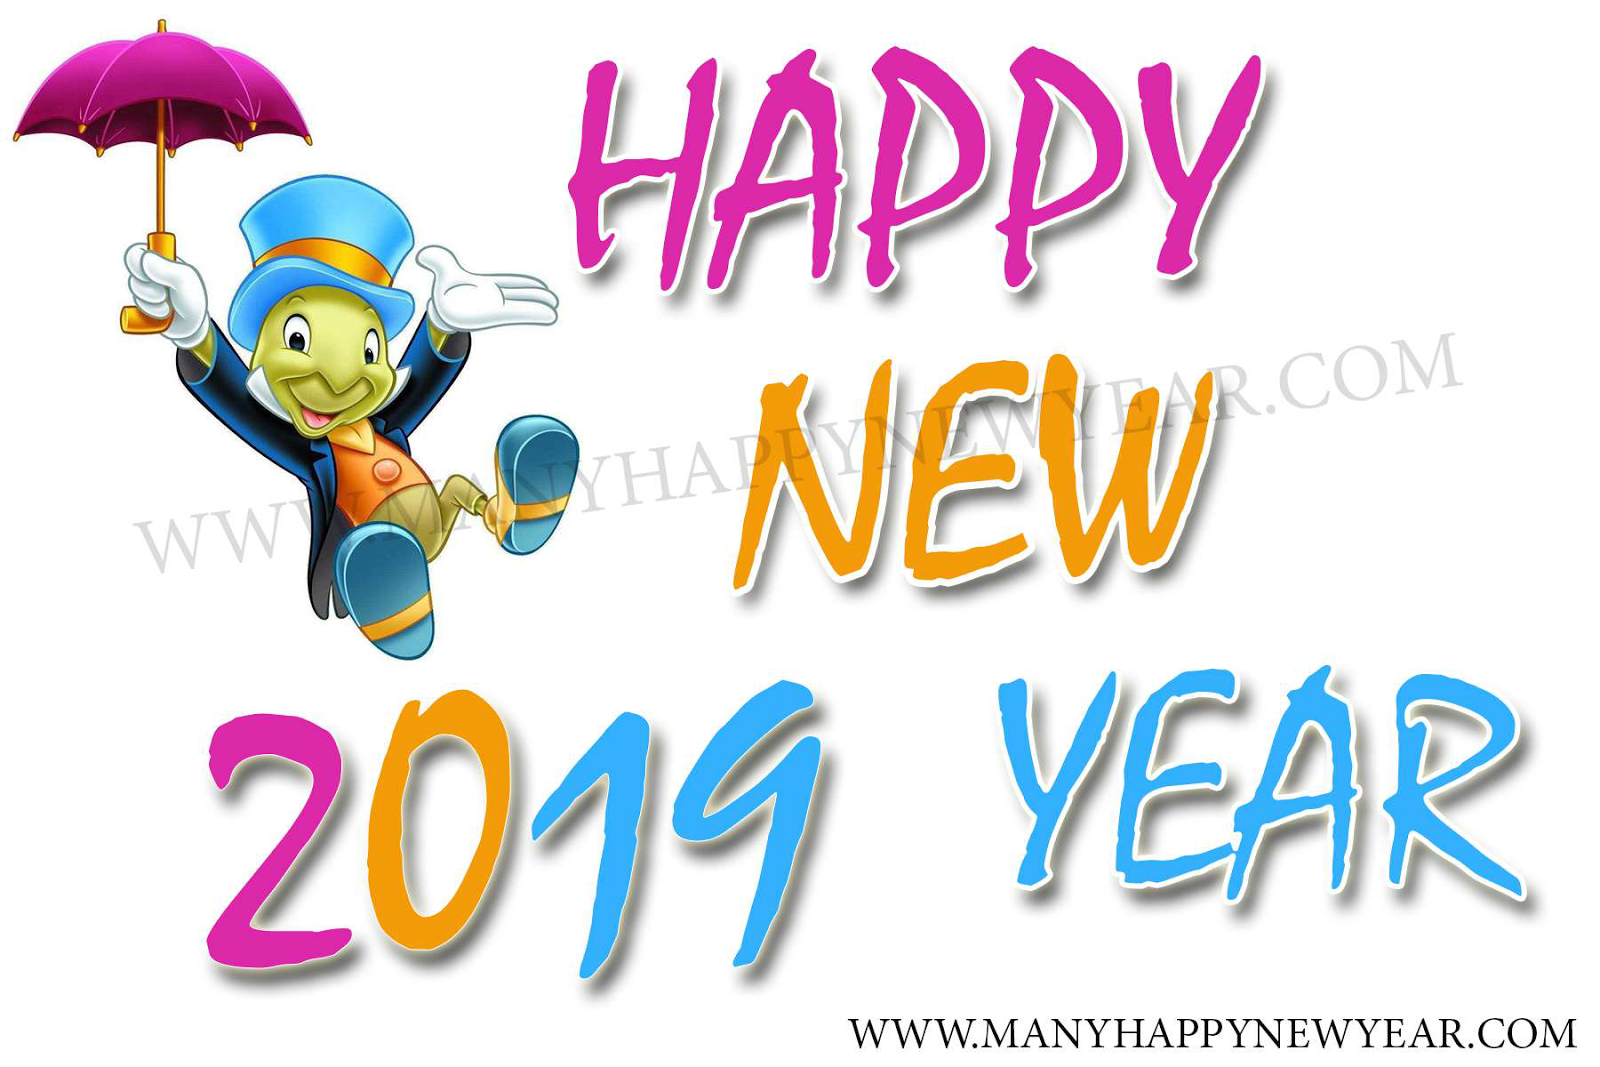 Happy New Year 2019 Funny Happynewyear2019funny Happy New Year Meme Happy New Year Quotes Happy New Year Images